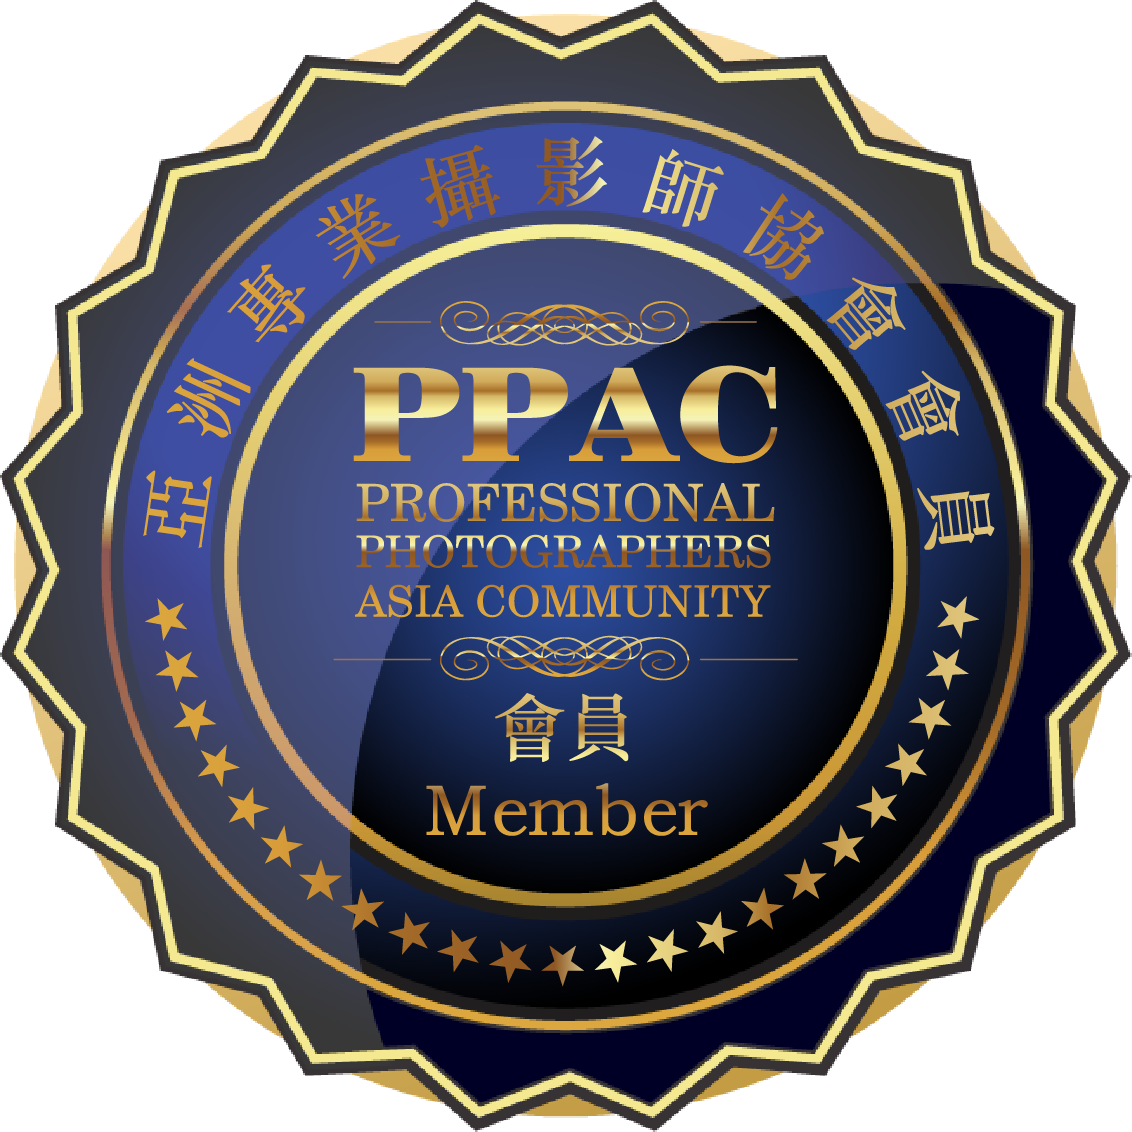 logo PPAC photographer